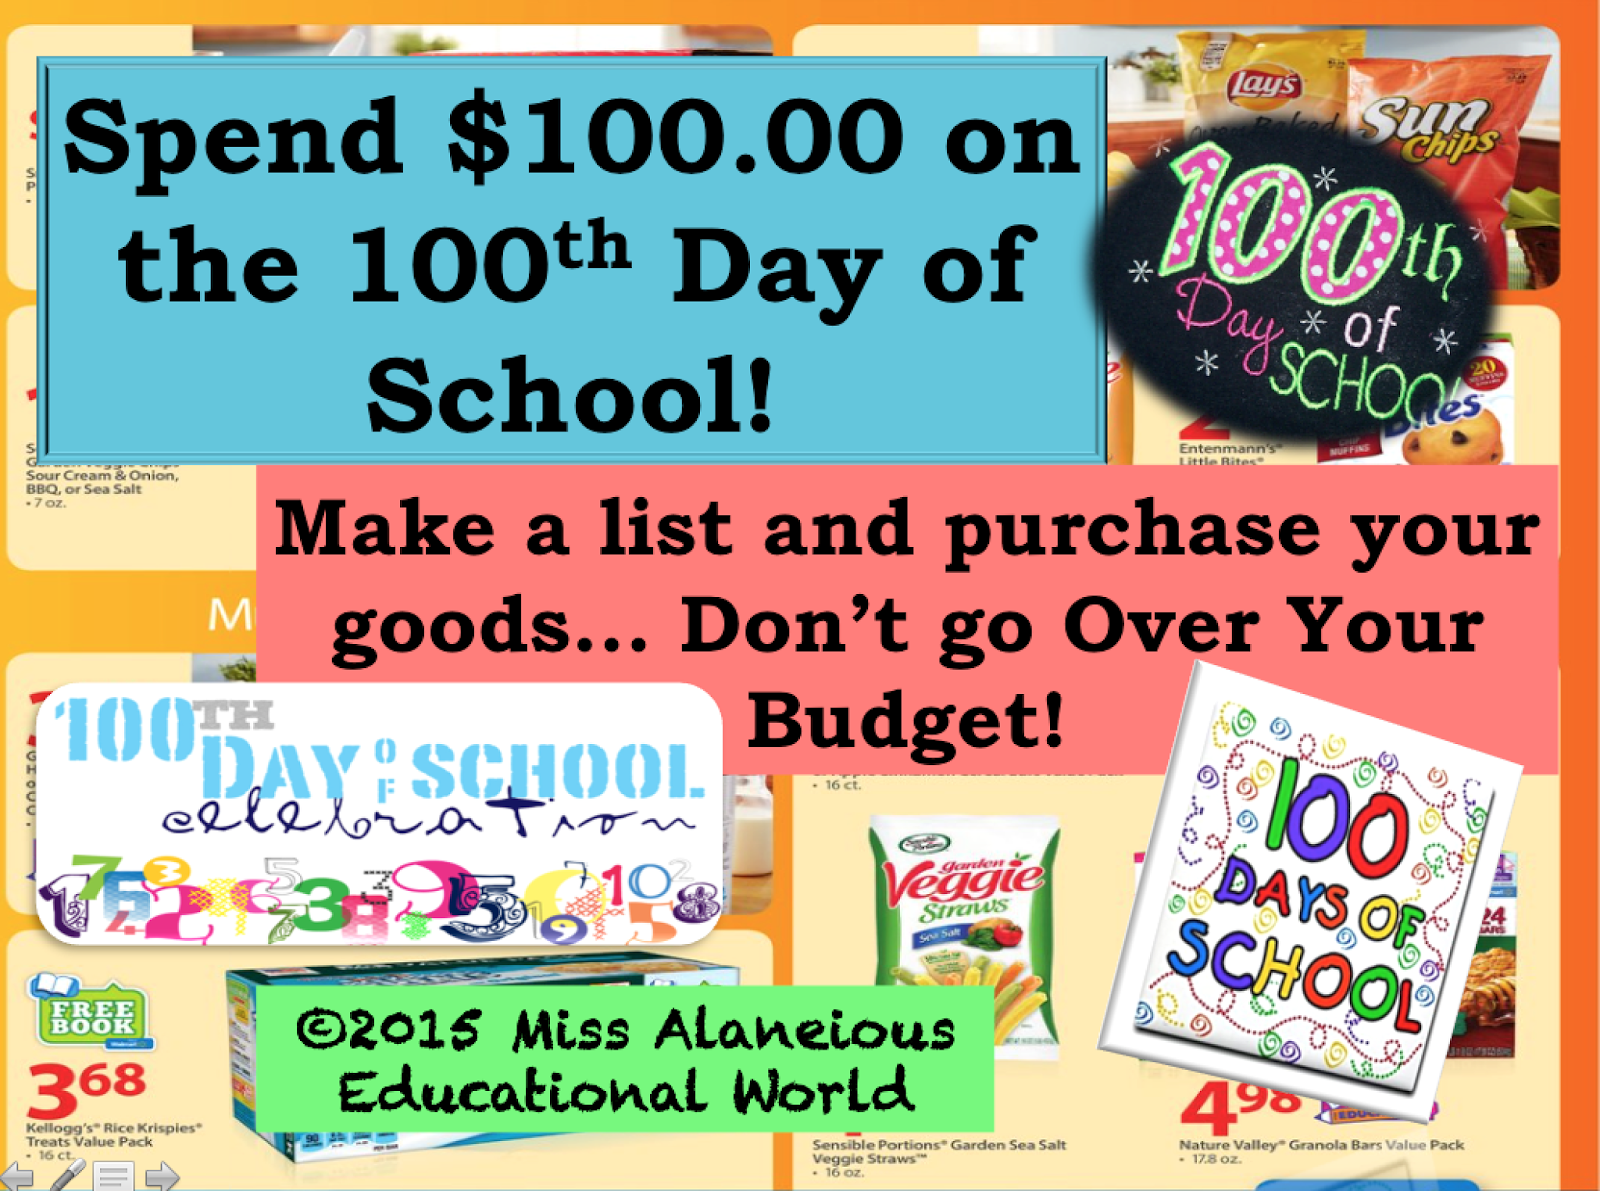 100th Day of School 2015 It's The 100th Day of School